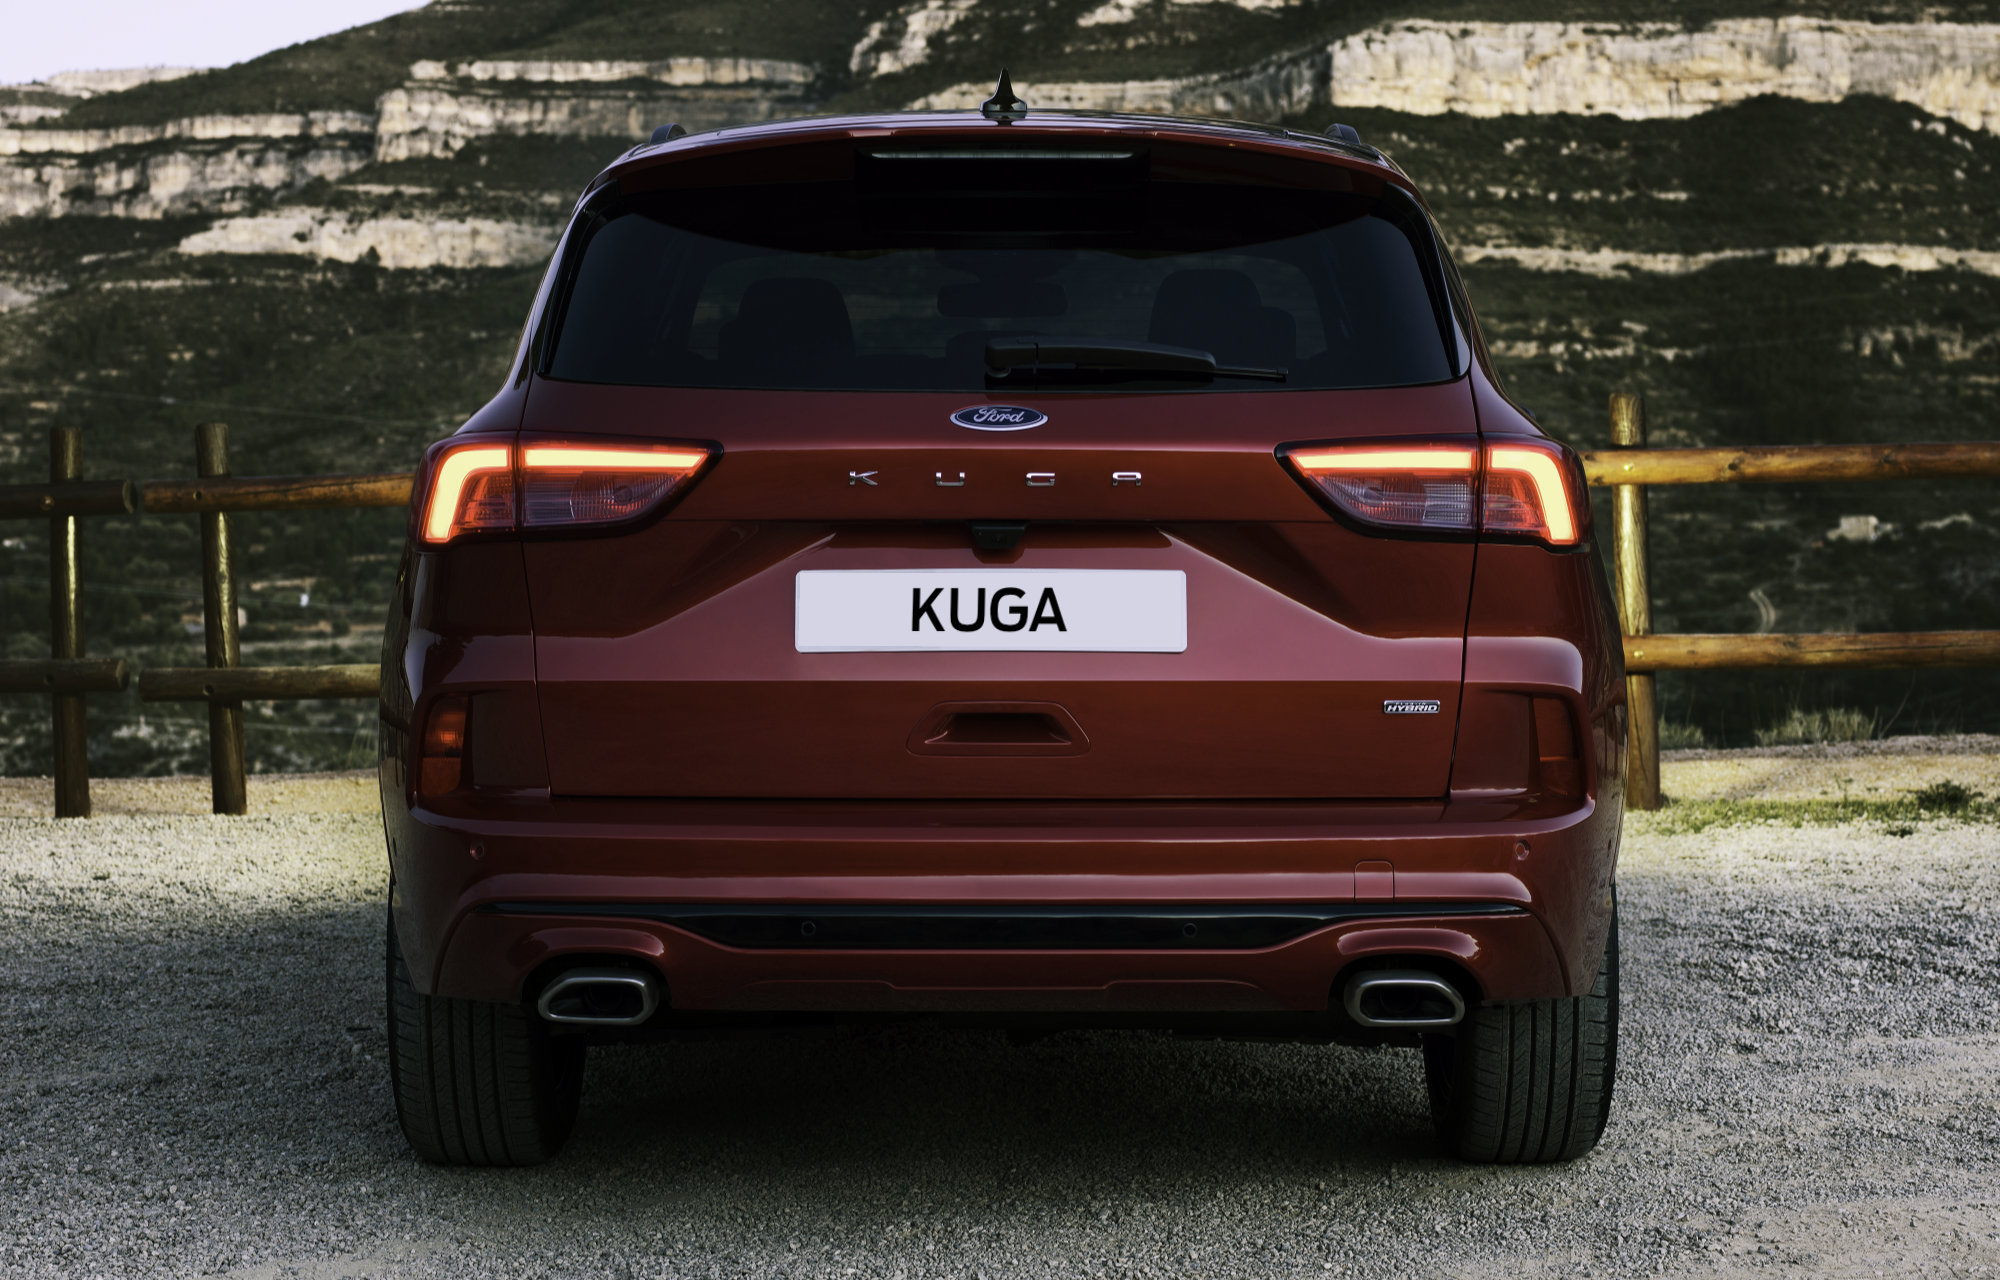 Ford Kuga at Michael Lyng Motors